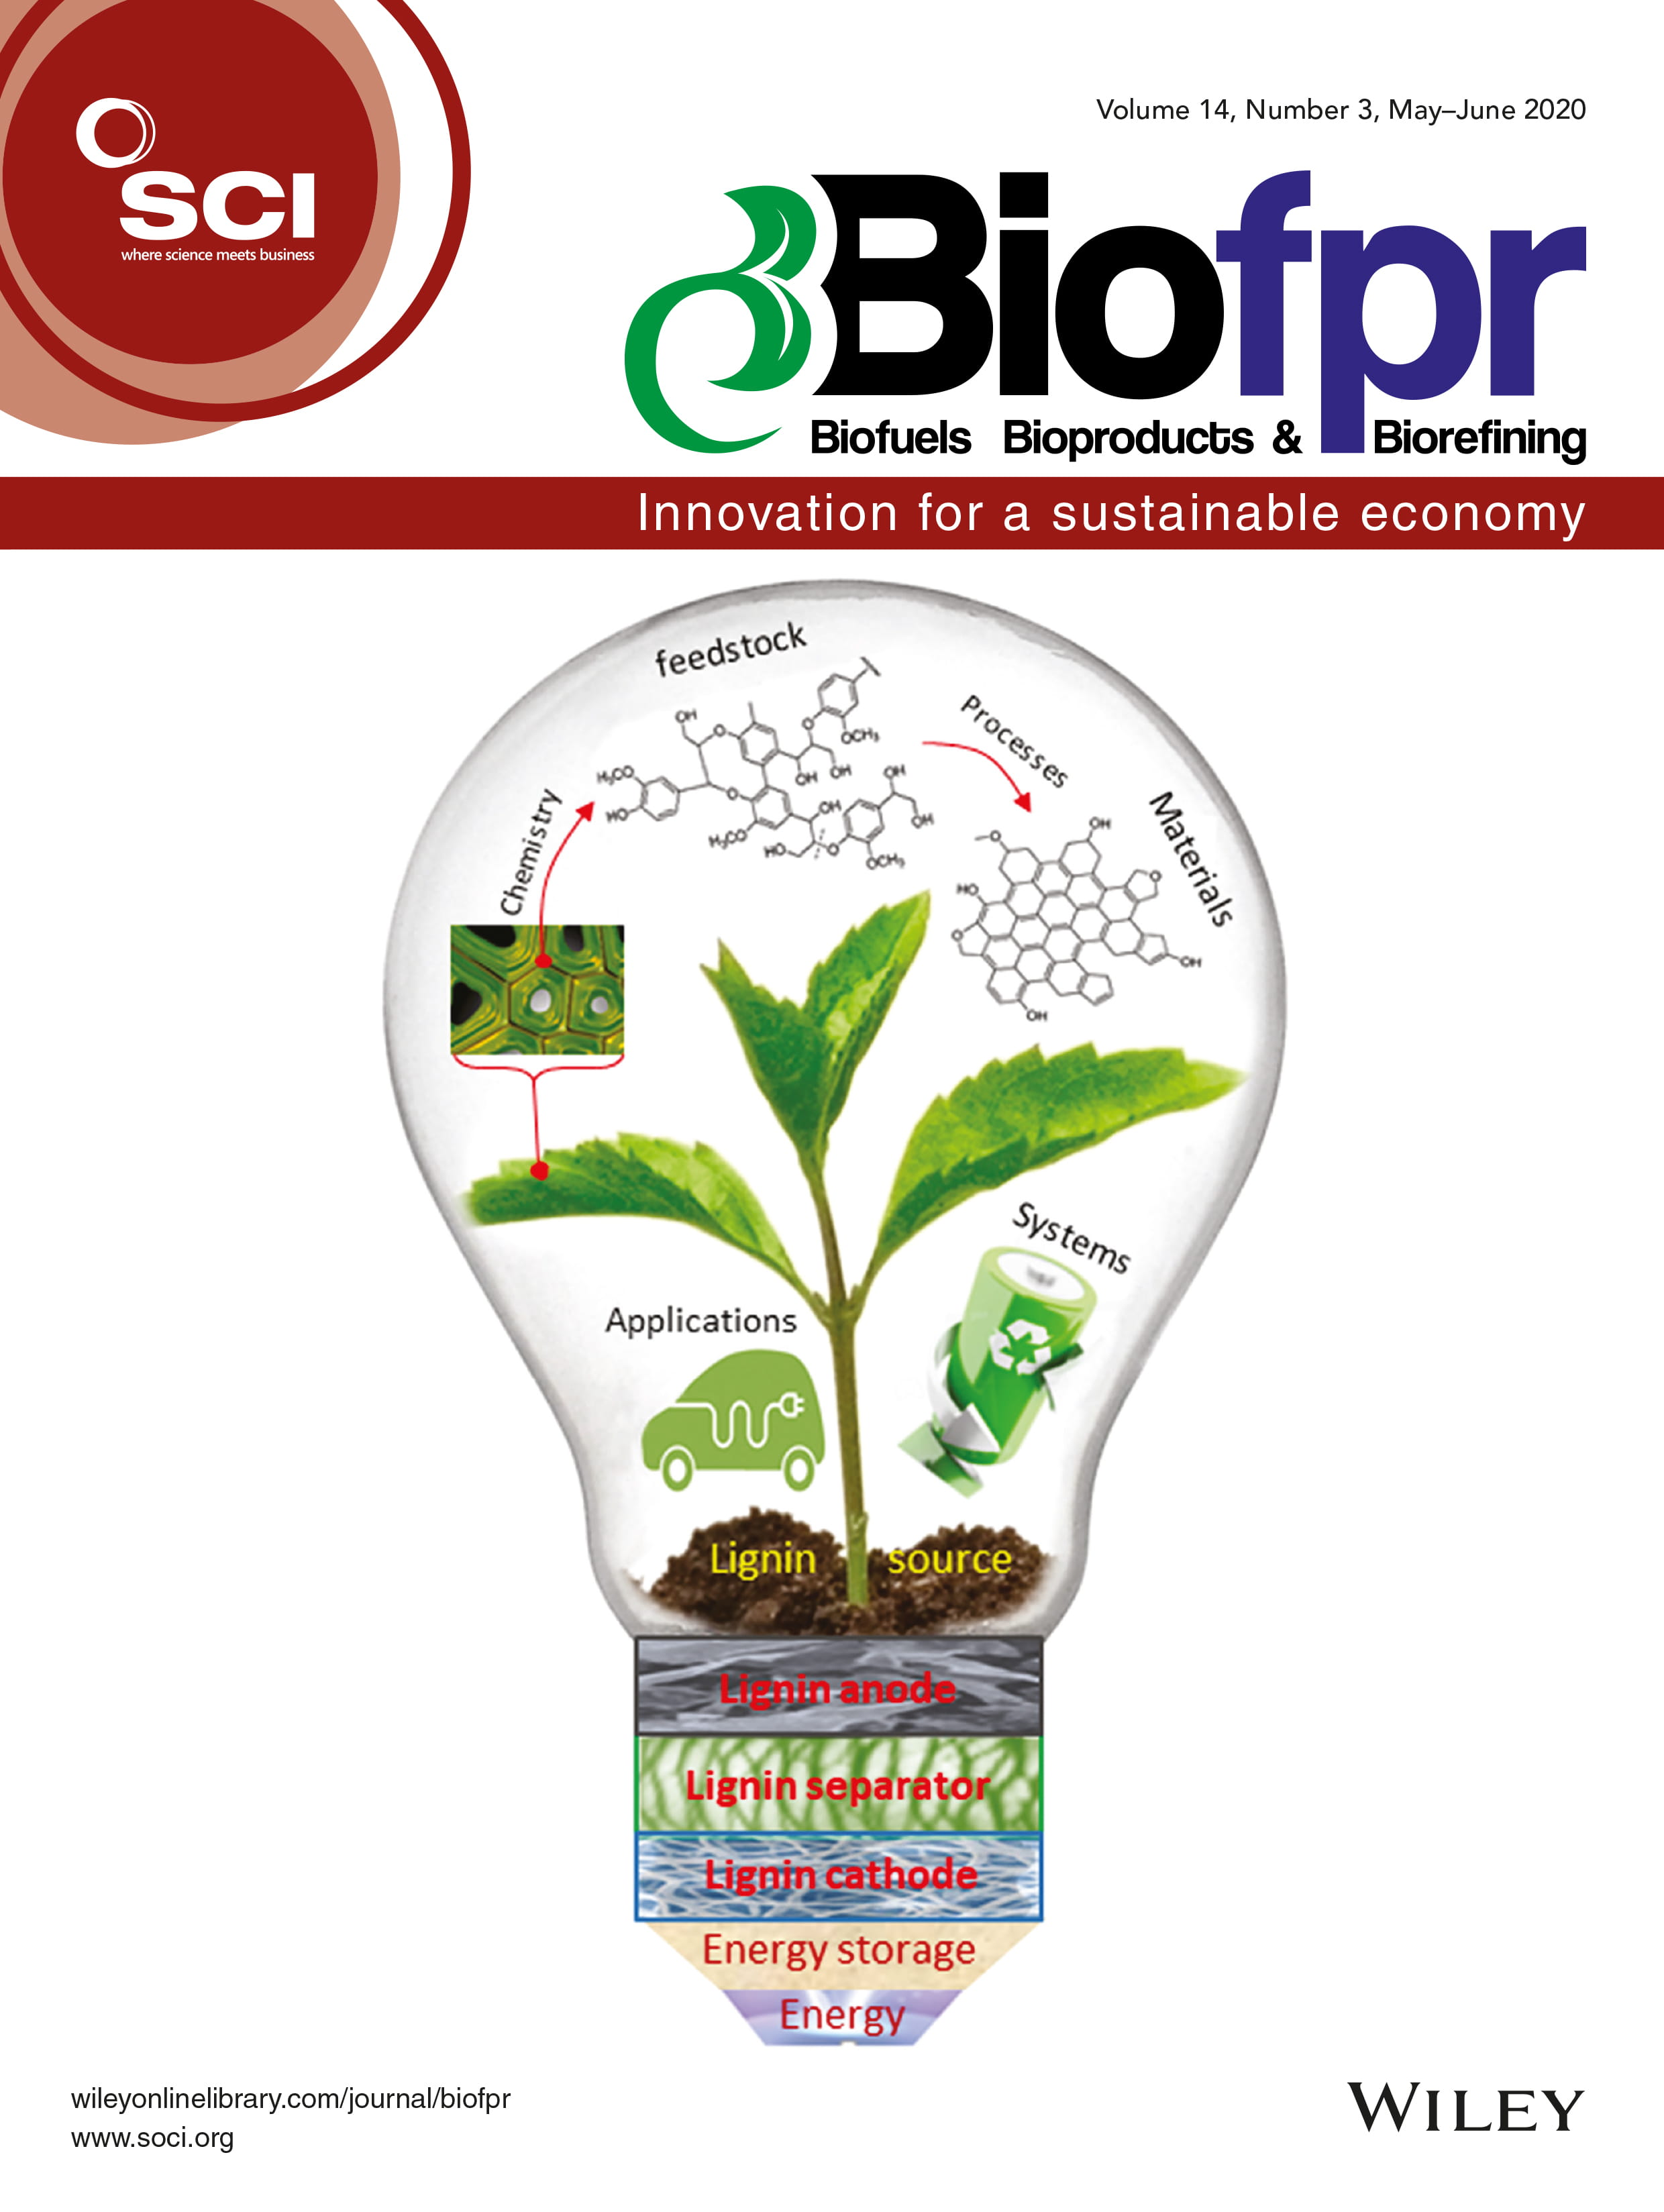 Biofuels, Bioproducts and Biorefining